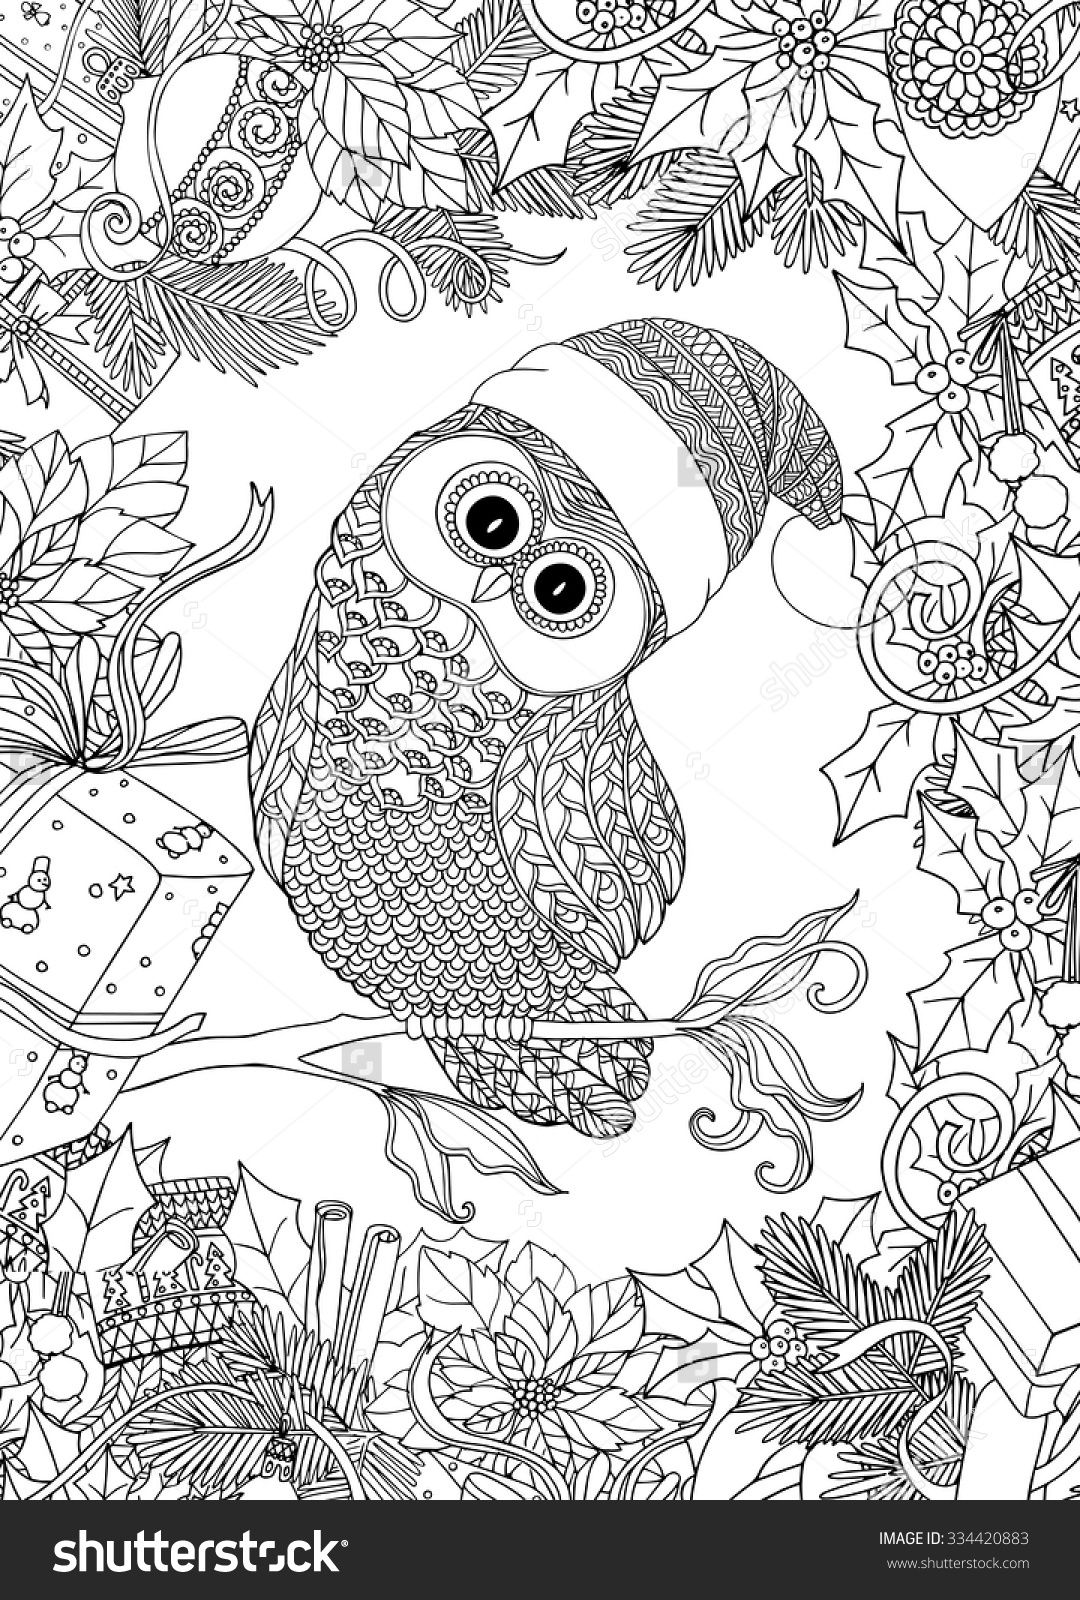 coloring book for adult and older children coloring page with - Children Coloring Book